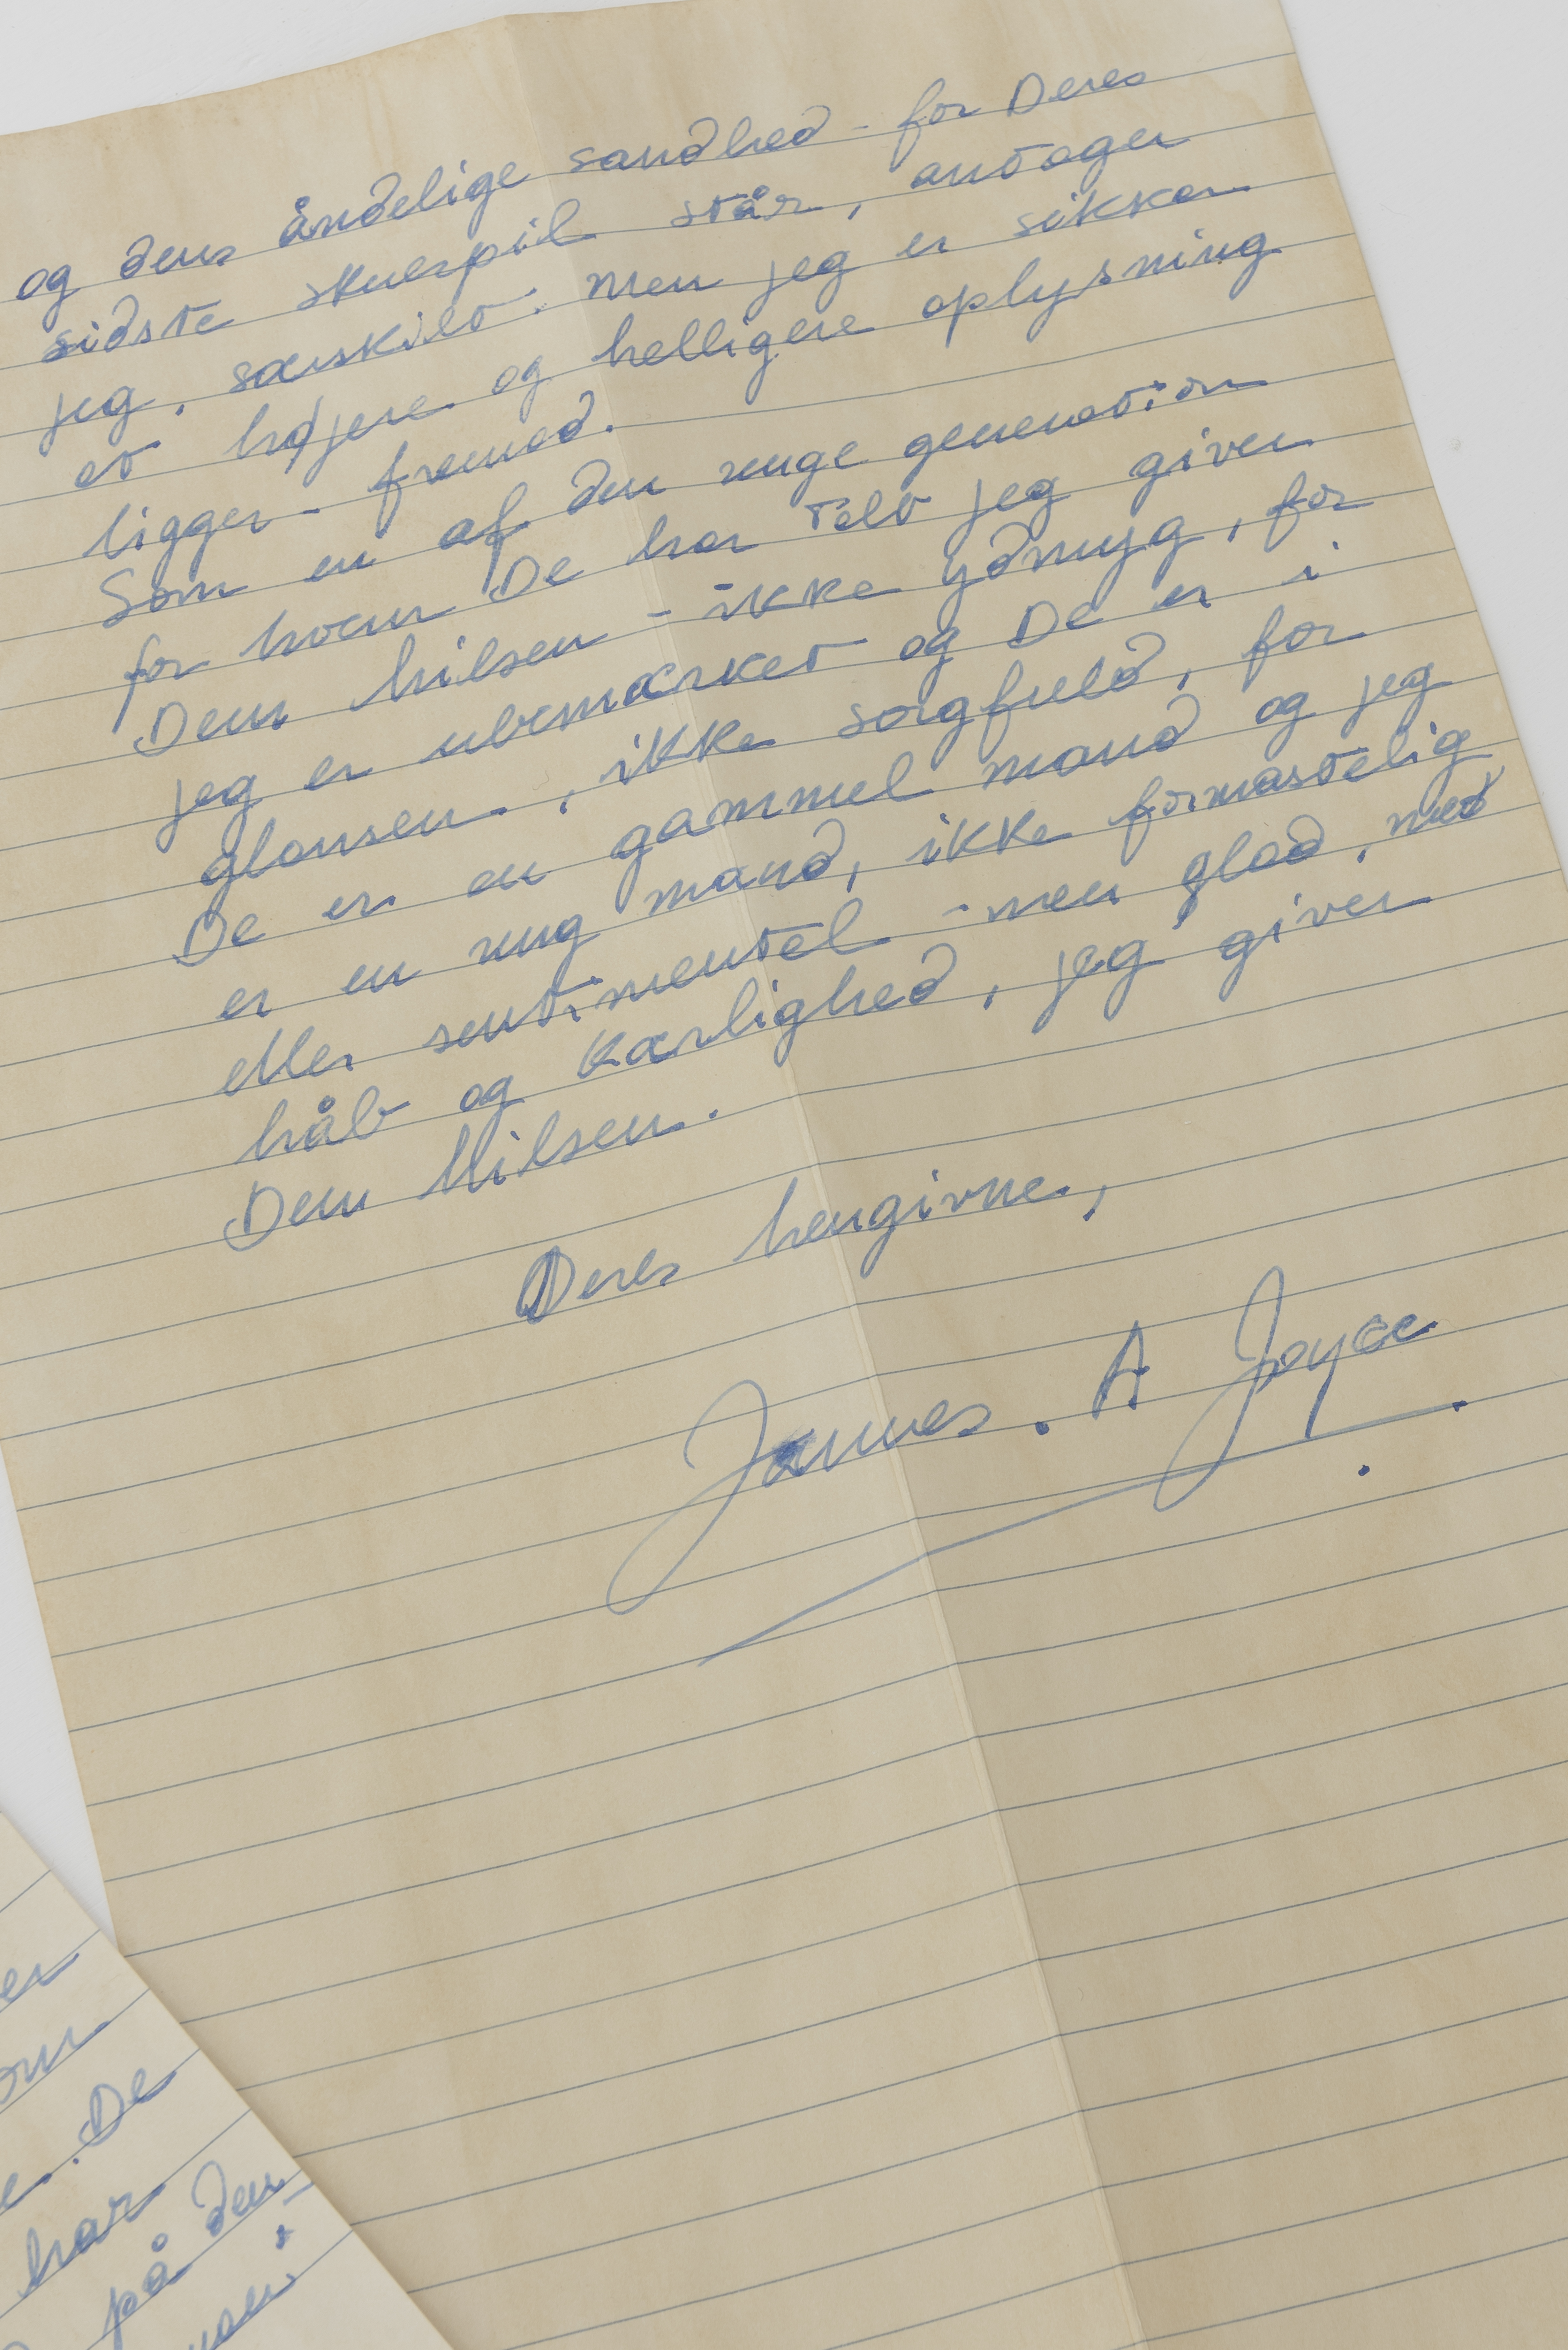 Attempt to Forge a Letter from Joyce to Ibsen in 1901 Nº 12, 2015 (detail) |  | ProjecteSD